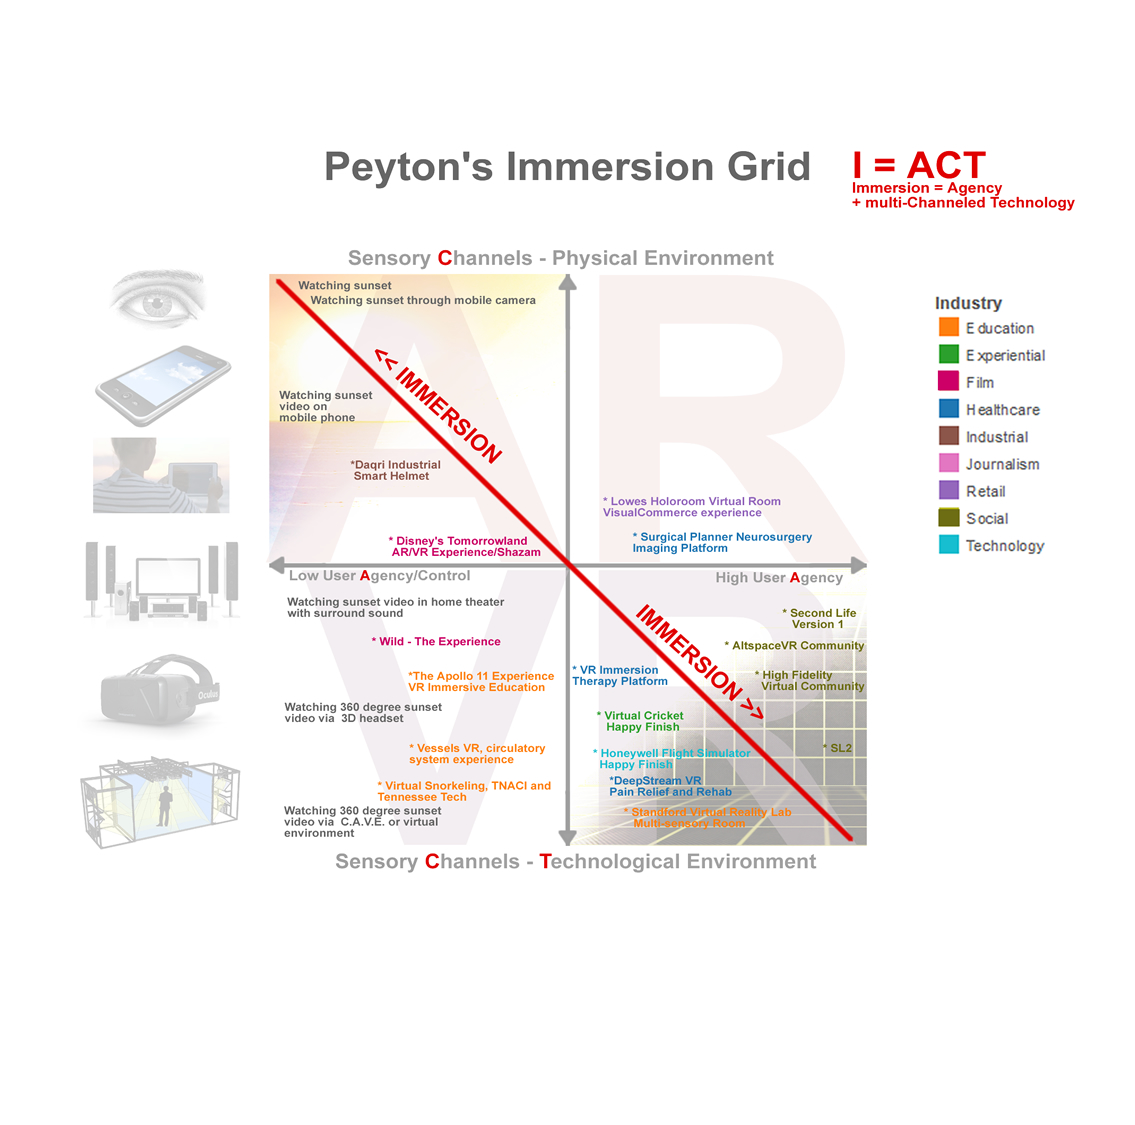 Peyton's Immersion Grid: A model to compare immersive media experiences